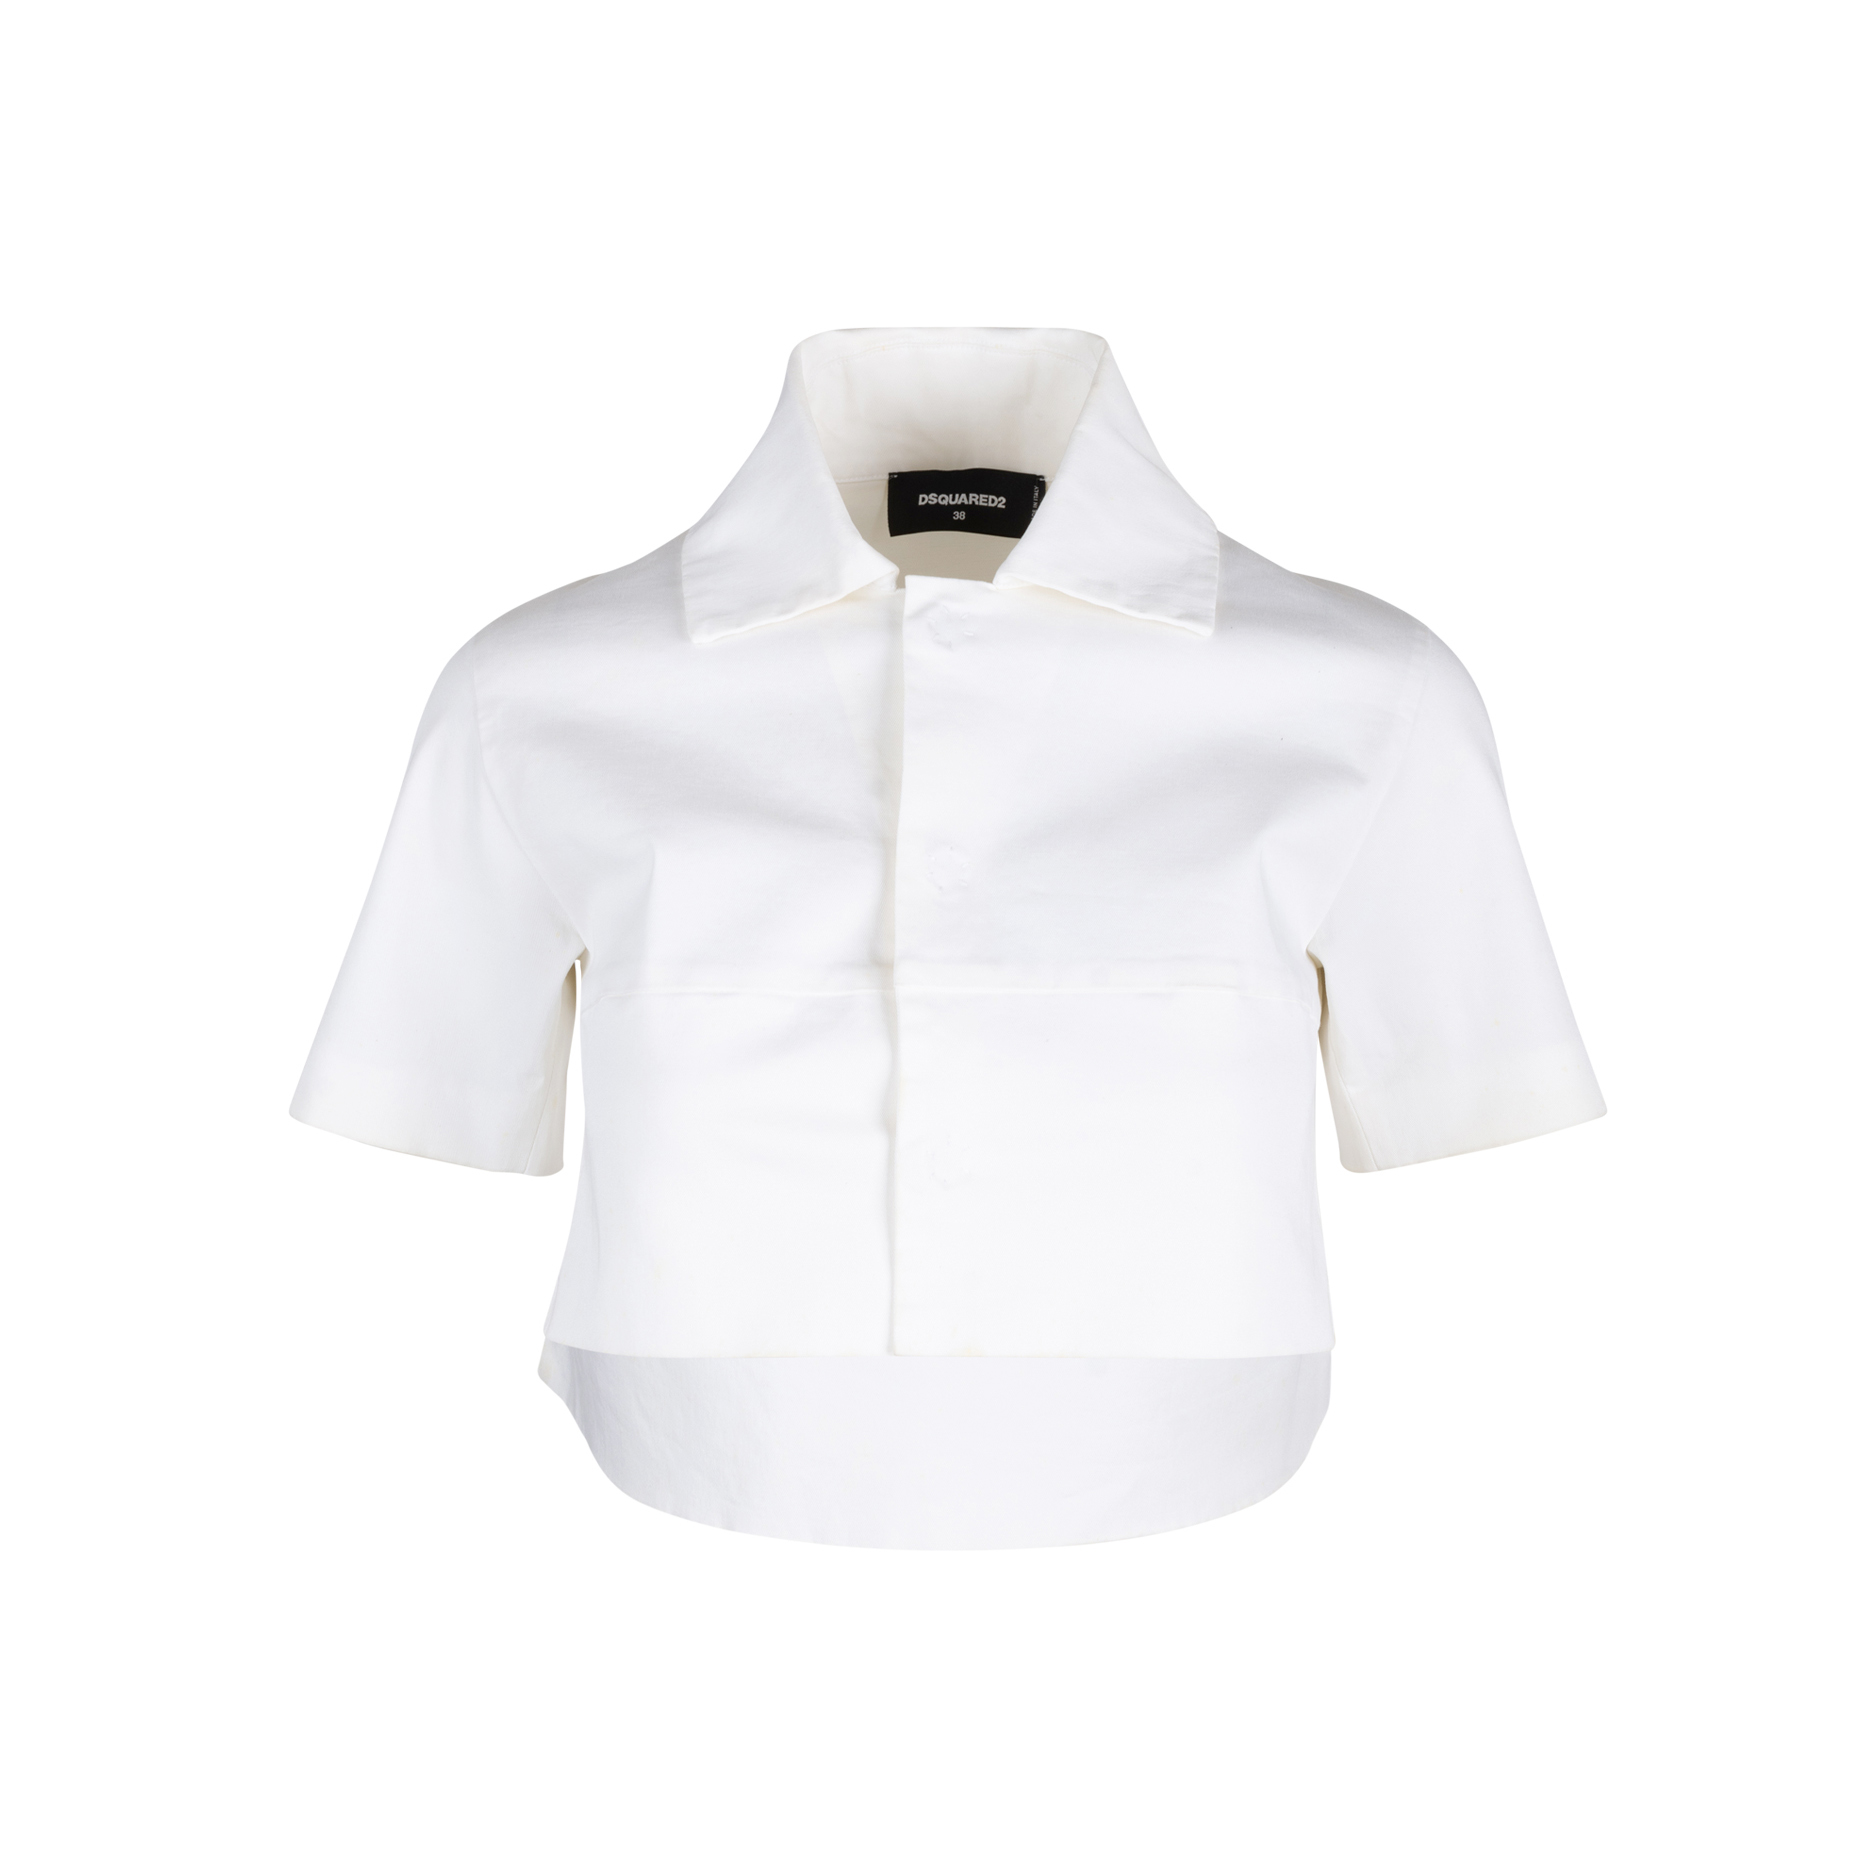 75ef8829 Authentic Second Hand Dsquared2 Cropped Shirt (PSS-515-00267) | THE FIFTH  COLLECTION